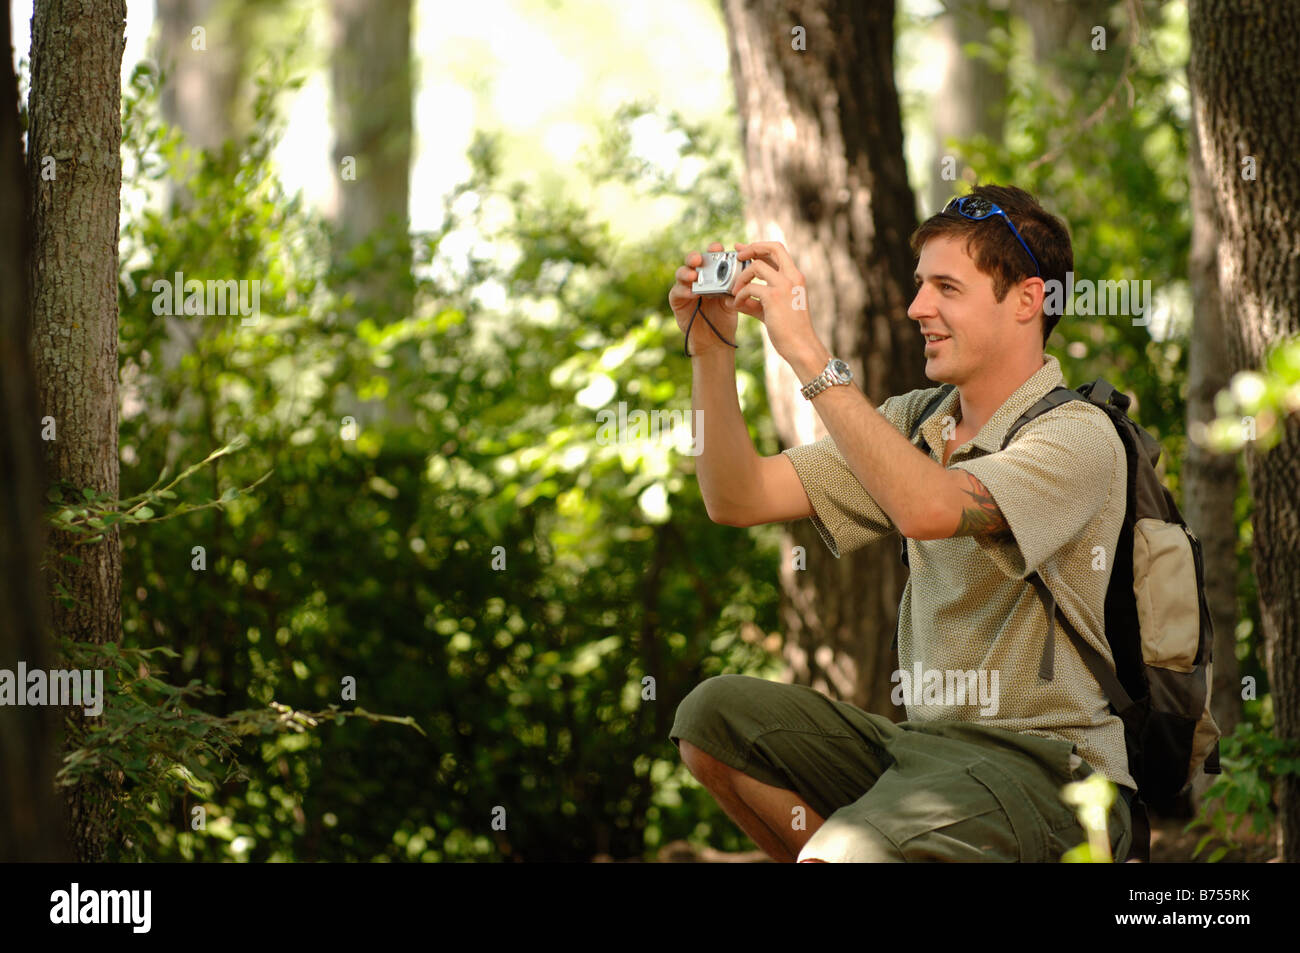 Young man in woods w/ camera, Regina, Saskatchewan - Stock Image